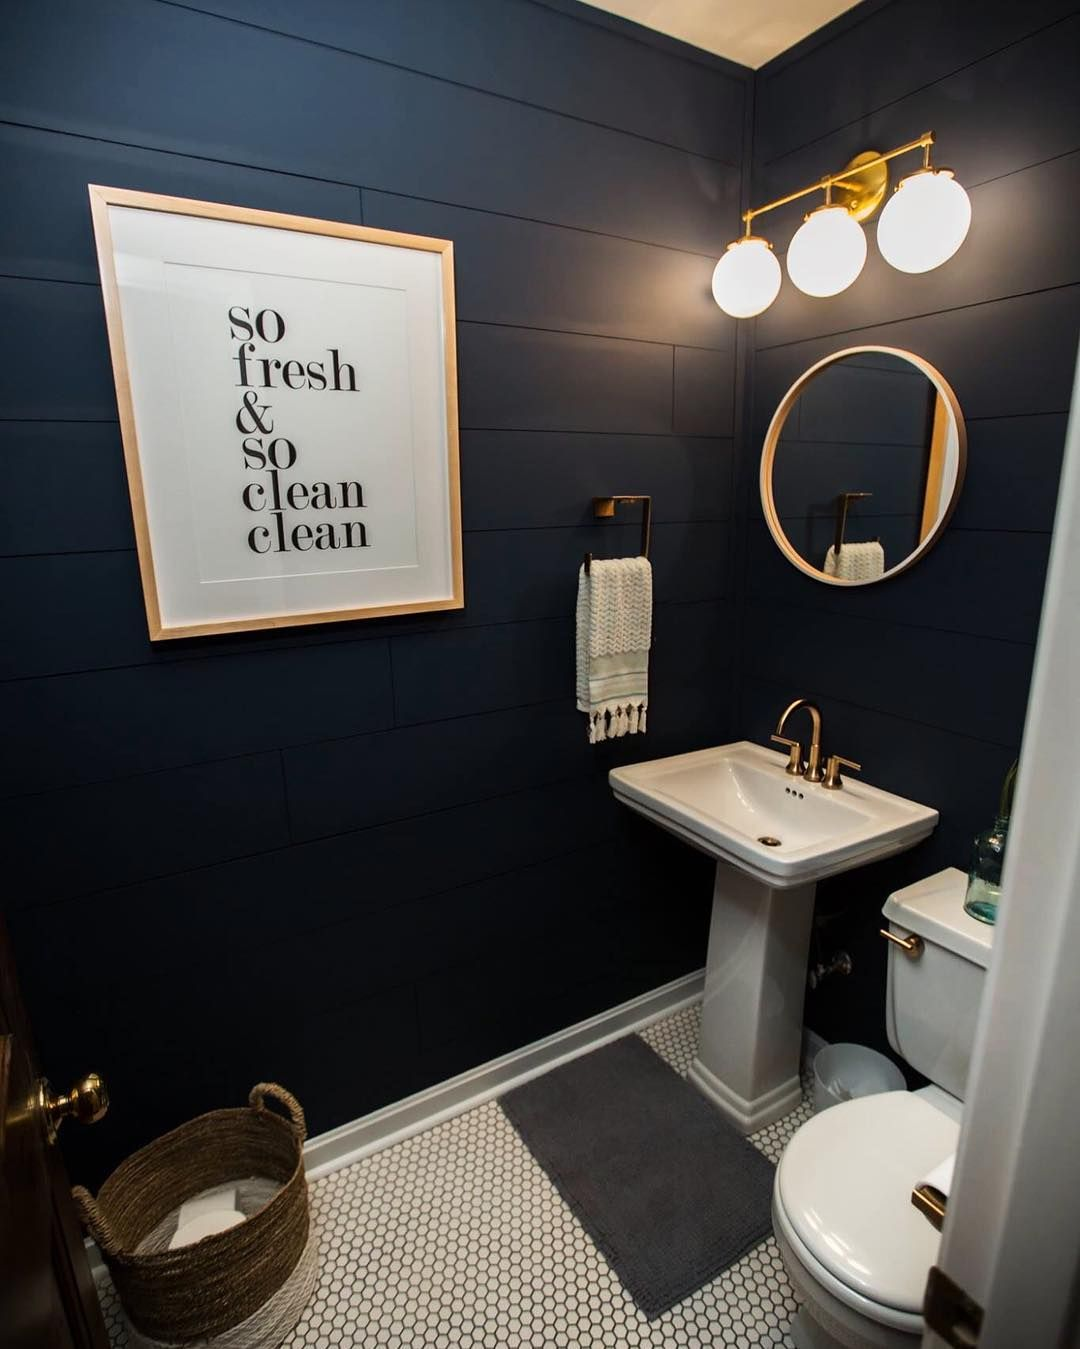 Powder room renovation complete. This might be the only room that